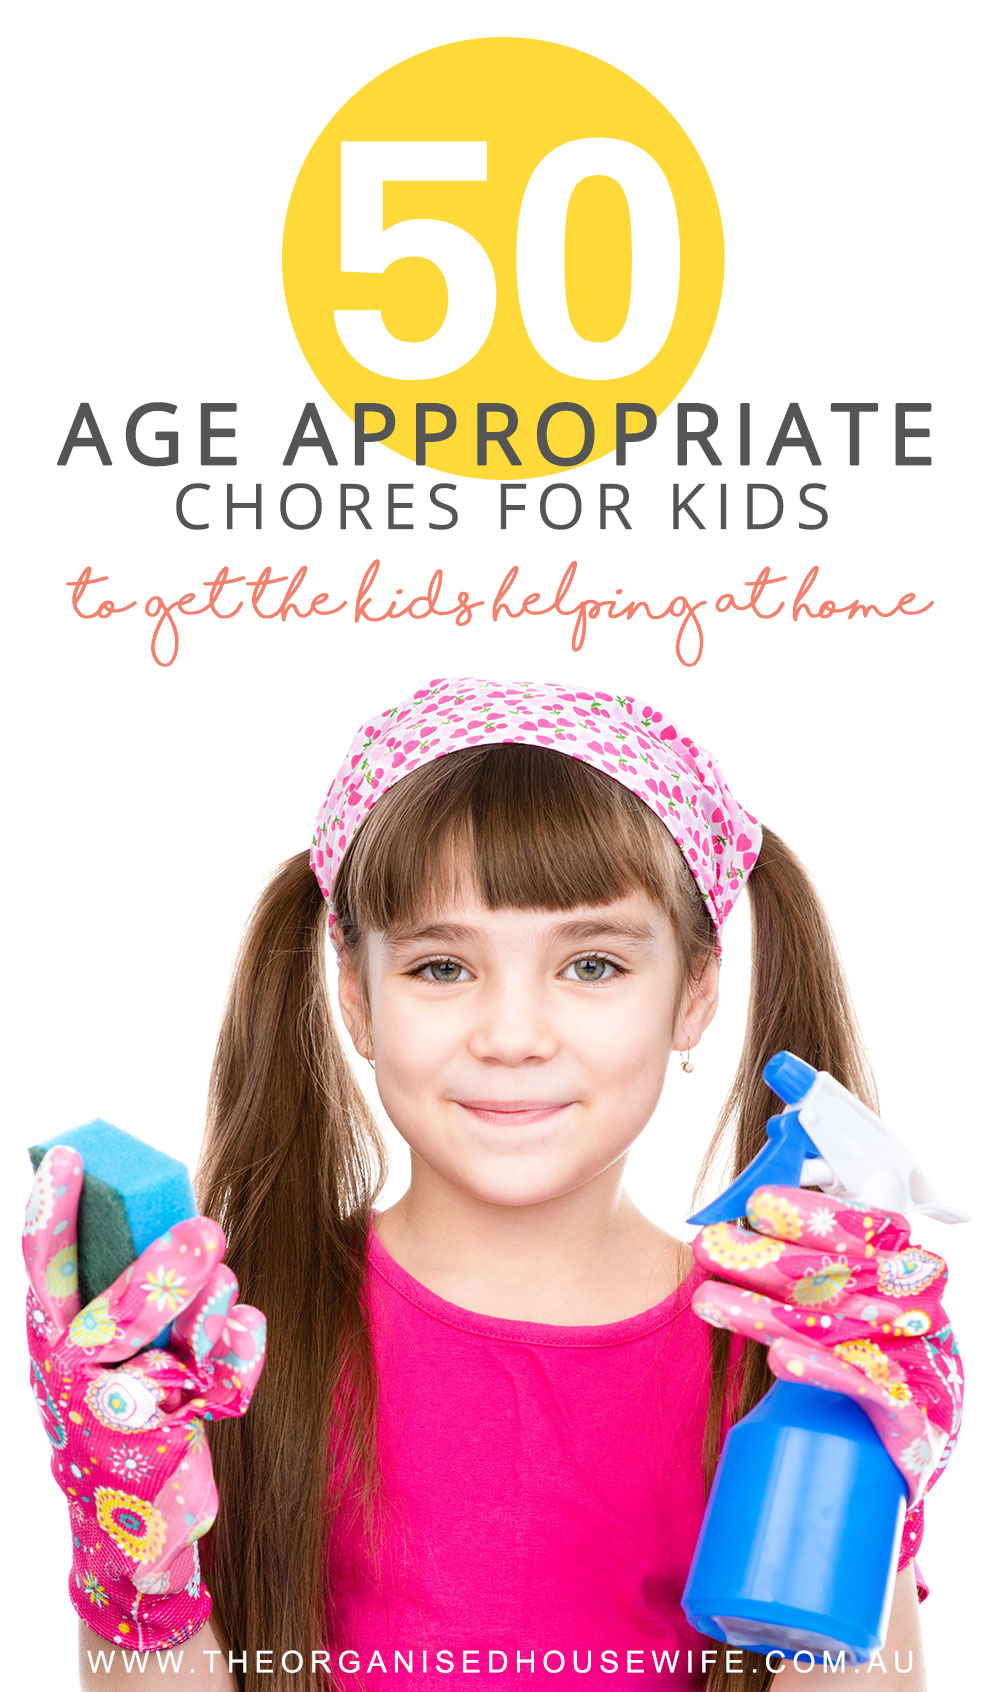 age appropriate chores for kids.